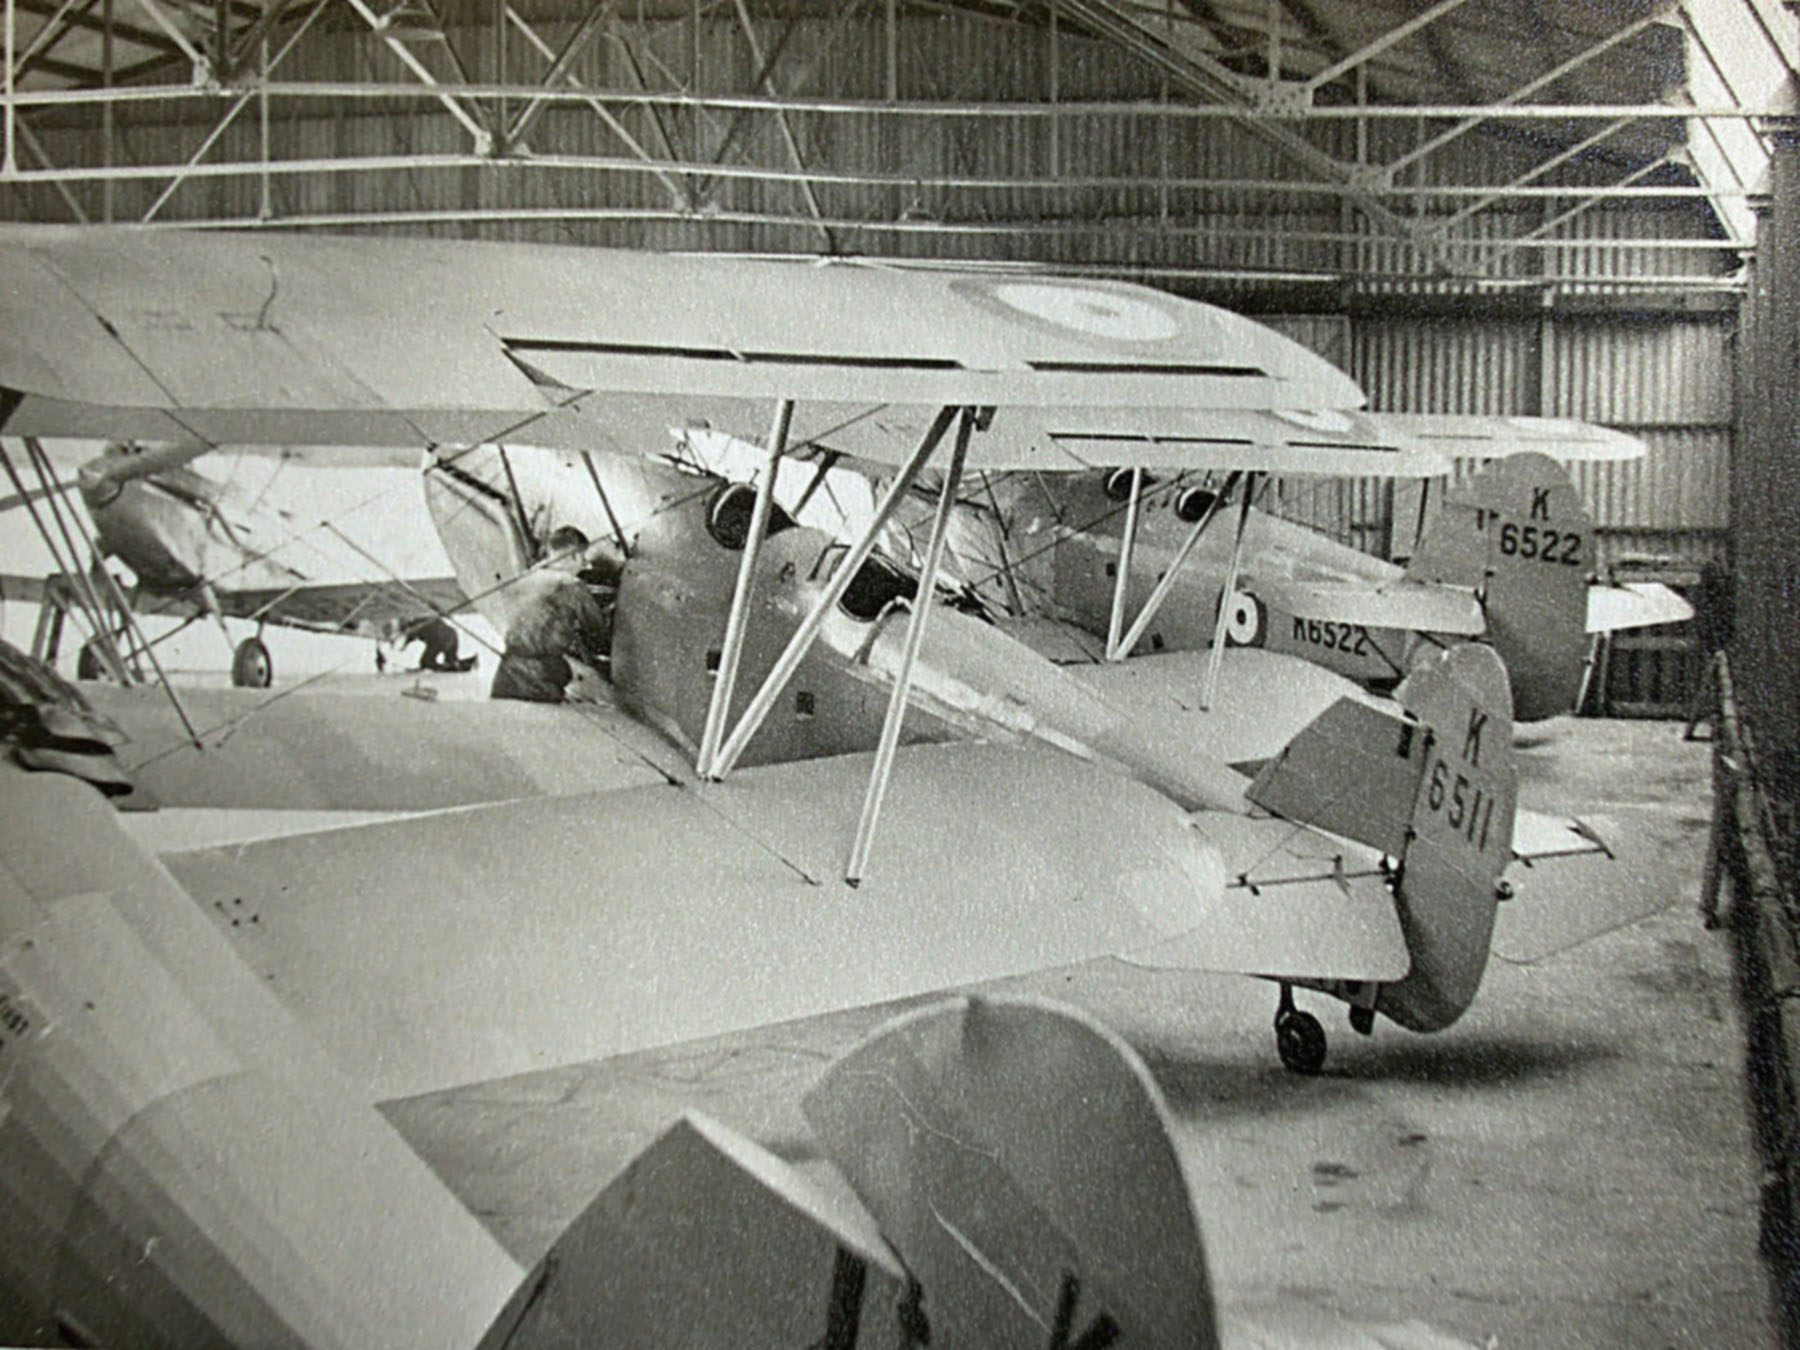 Hawker Hart T RAF K6511 and K6522 trainer photo taken by Patrick Hayes KIA July 7 1940 01